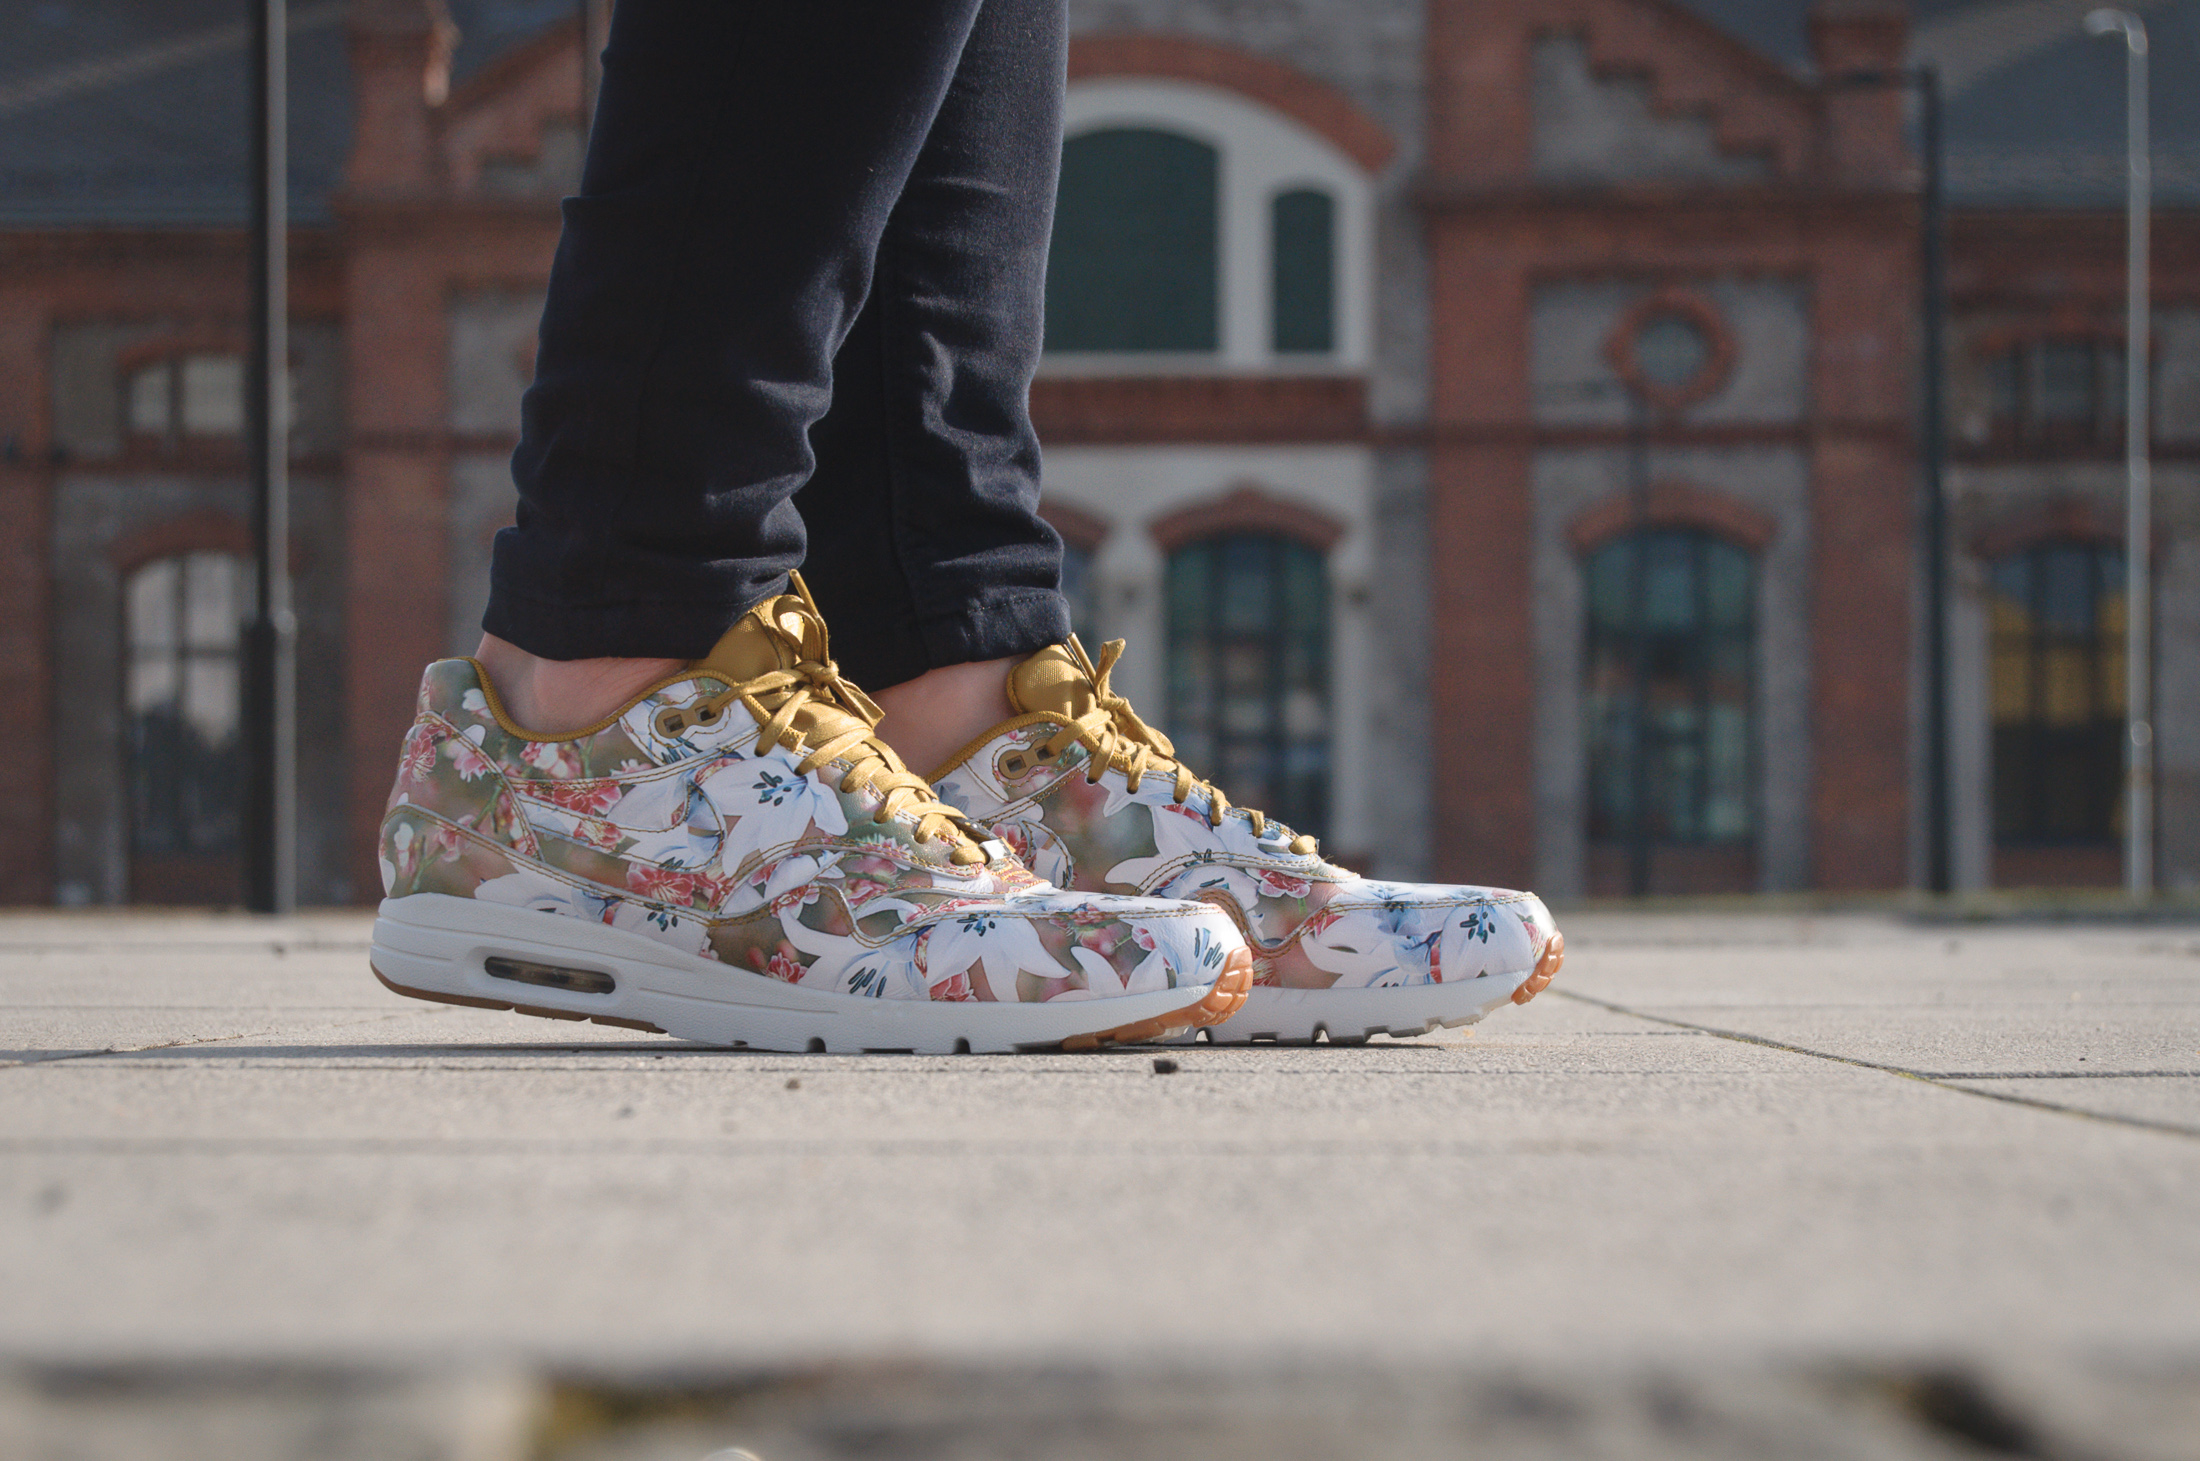 The Nike Sportswear Women's City Collection / On feet preview